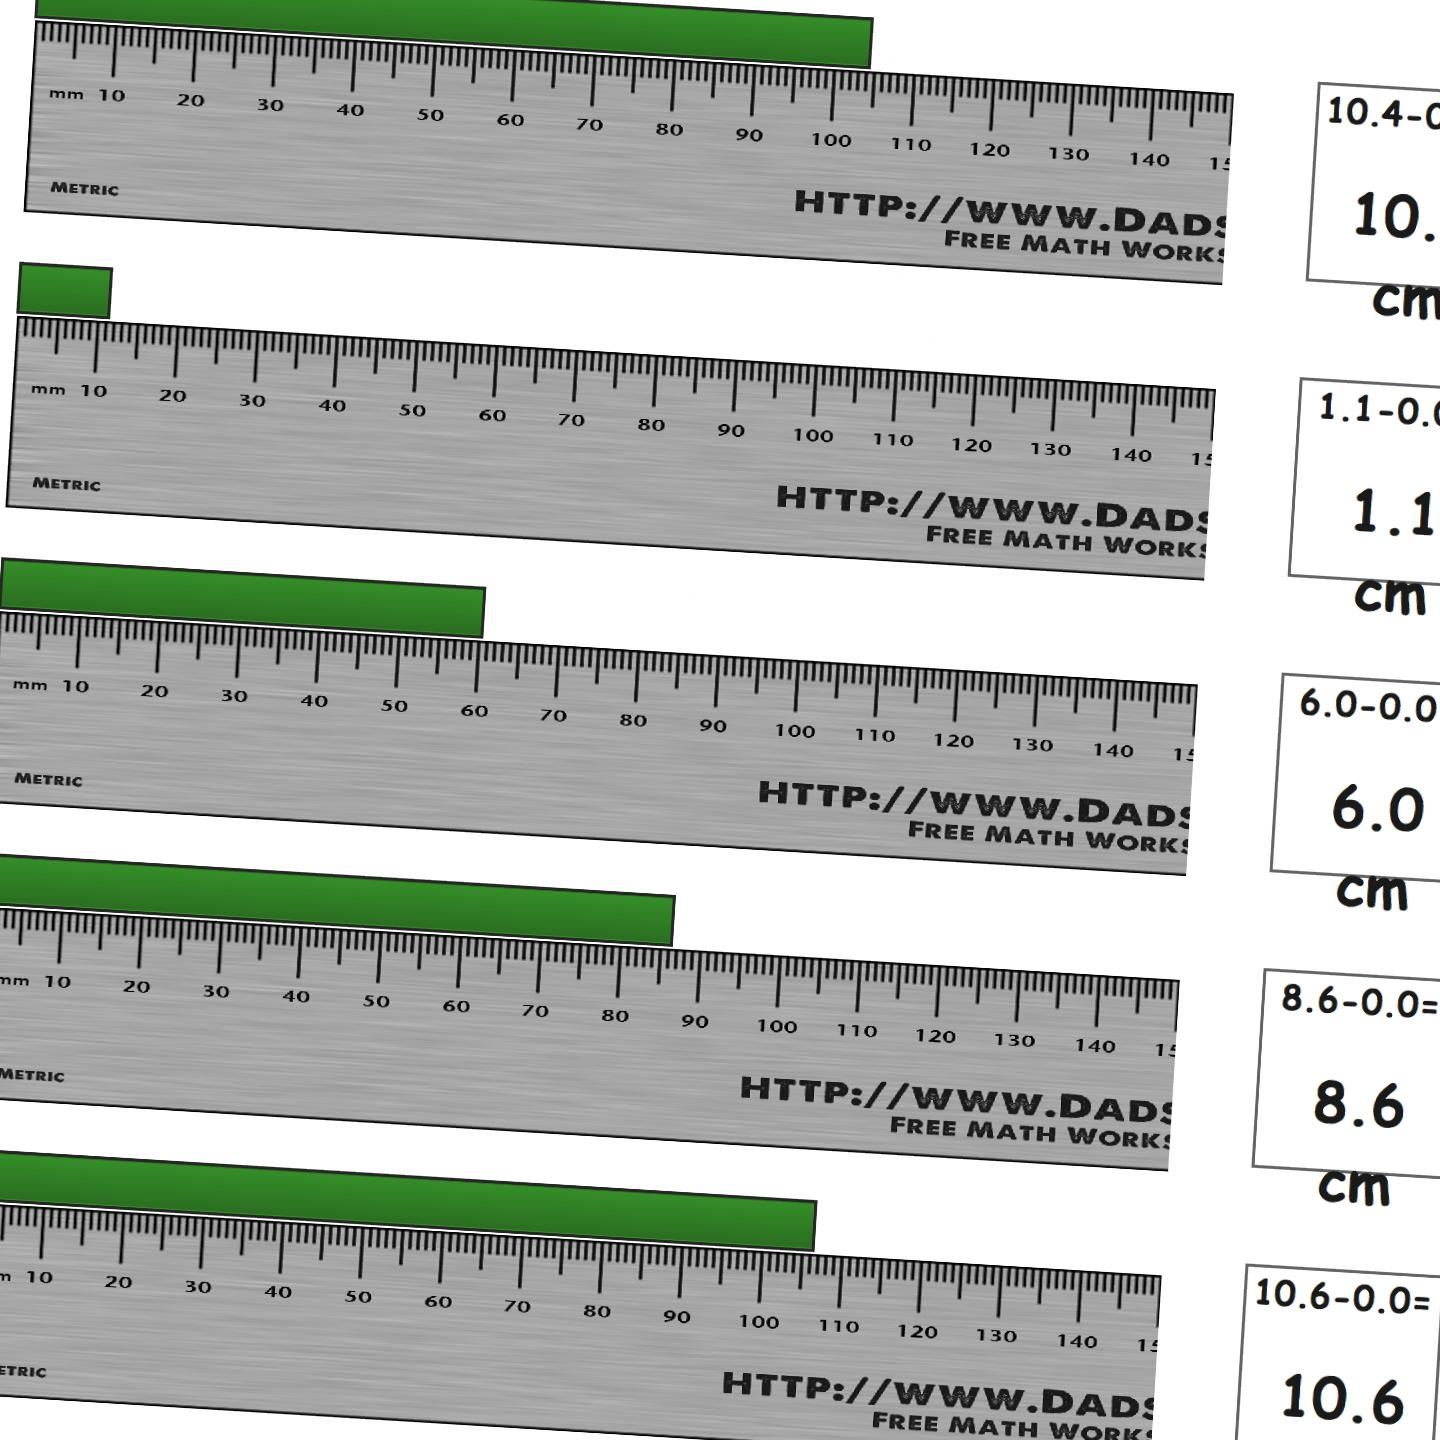 Worksheets for measuring length on a metric ruler from zero